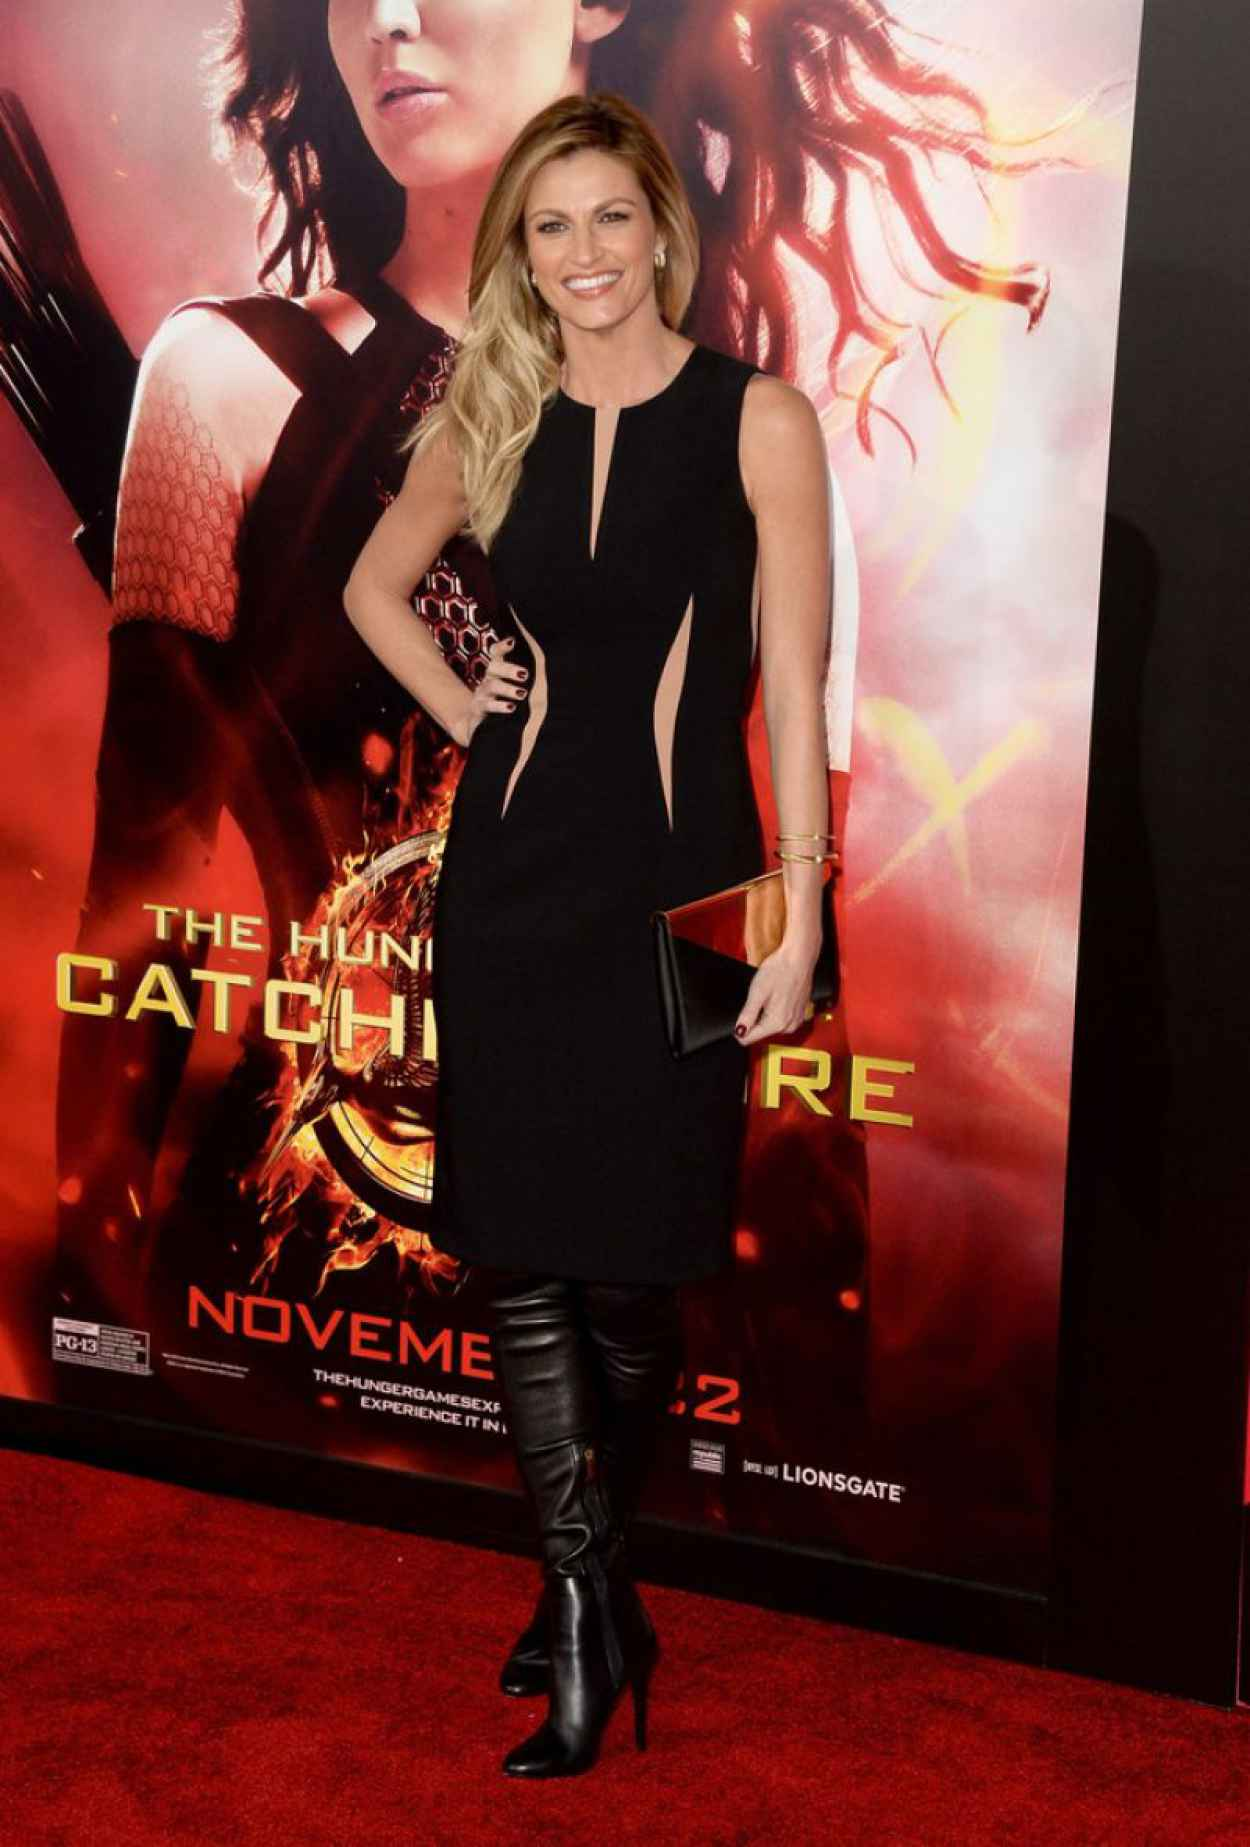 Erin Andrews Red Carpet Photos - THE HUNGER GAMES: CATCHING FIRE Premiere in Los Angeles-1